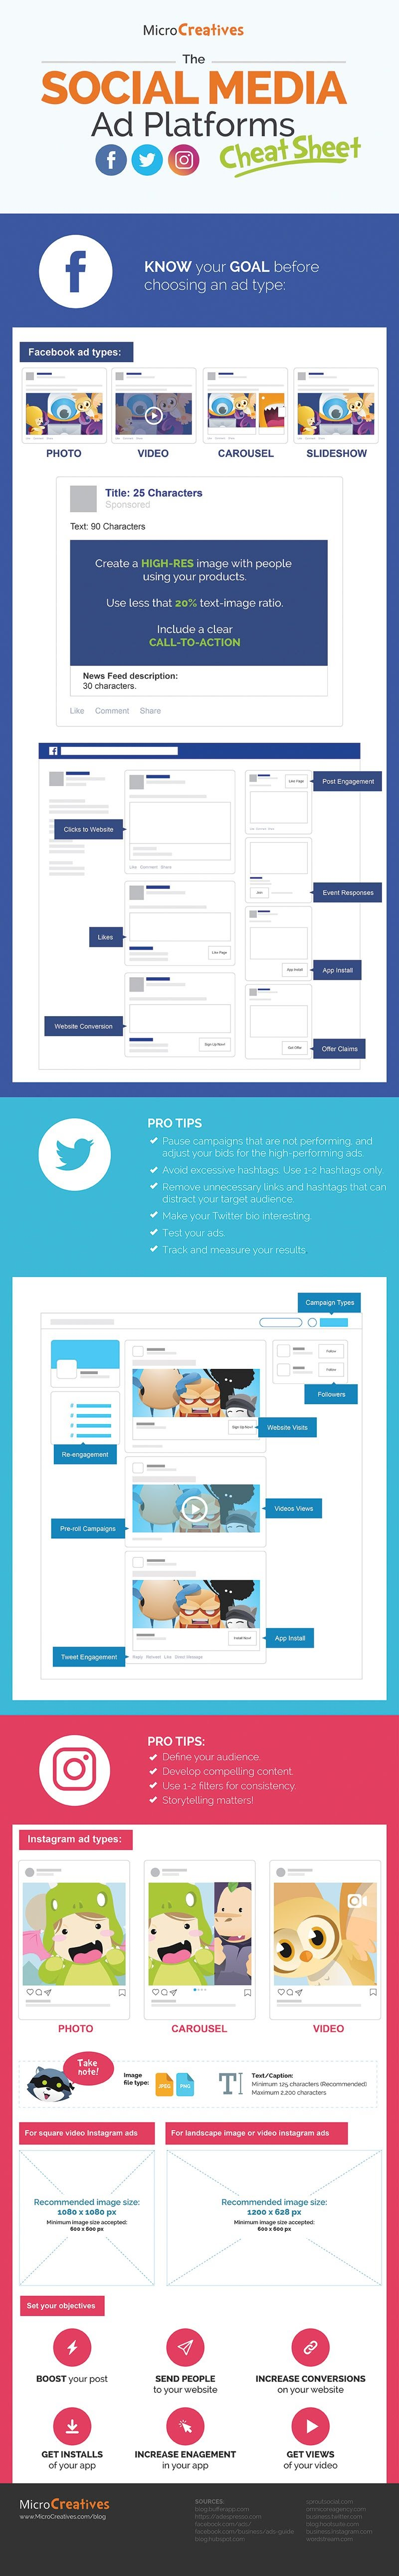 social media ads cheat sheet infographic